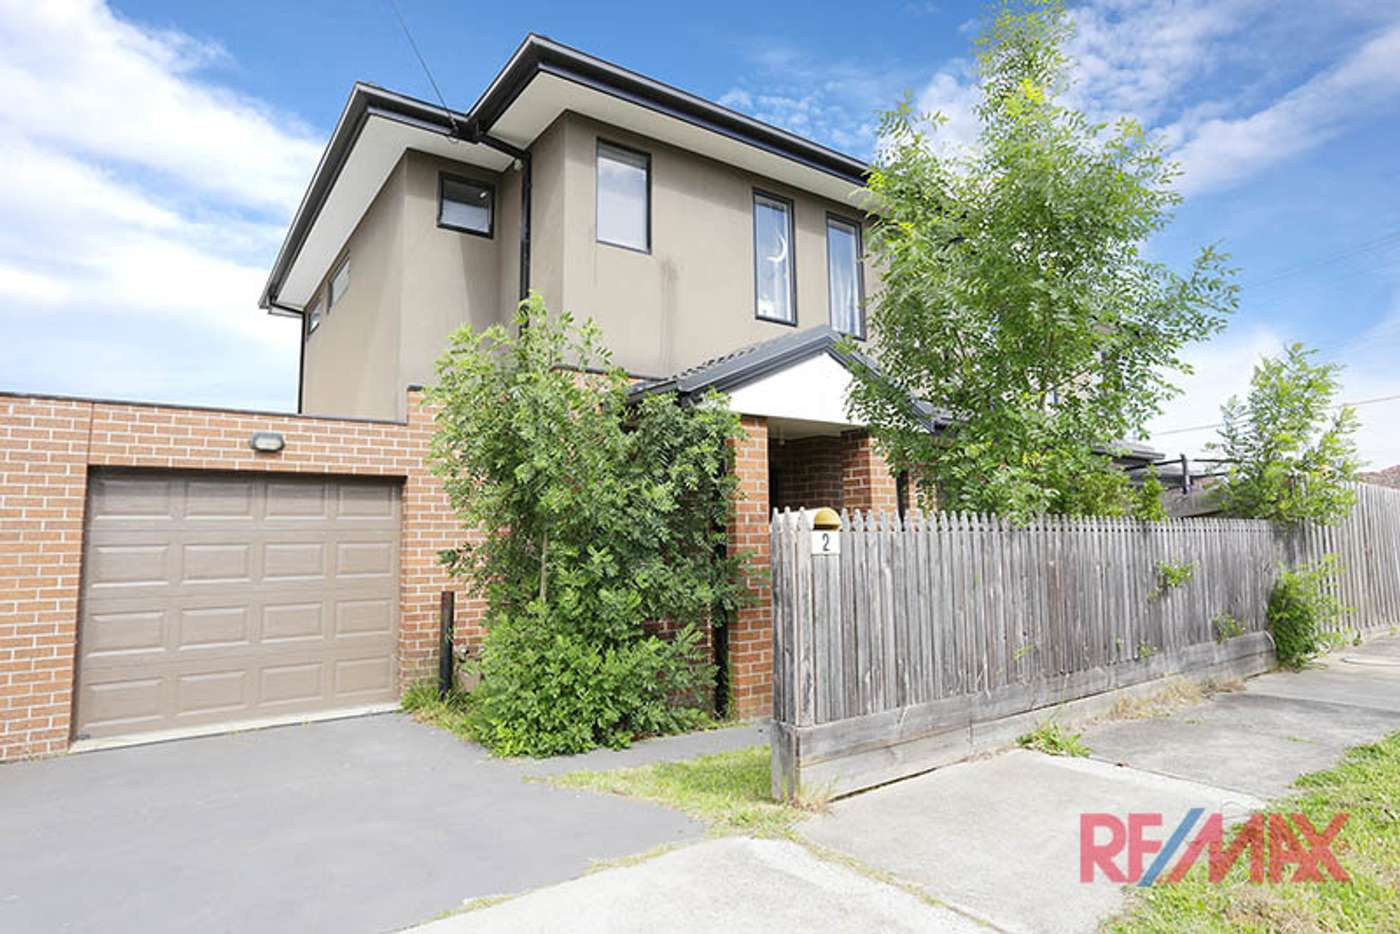 Main view of Homely townhouse listing, 2 Carroll Avenue, Dandenong VIC 3175